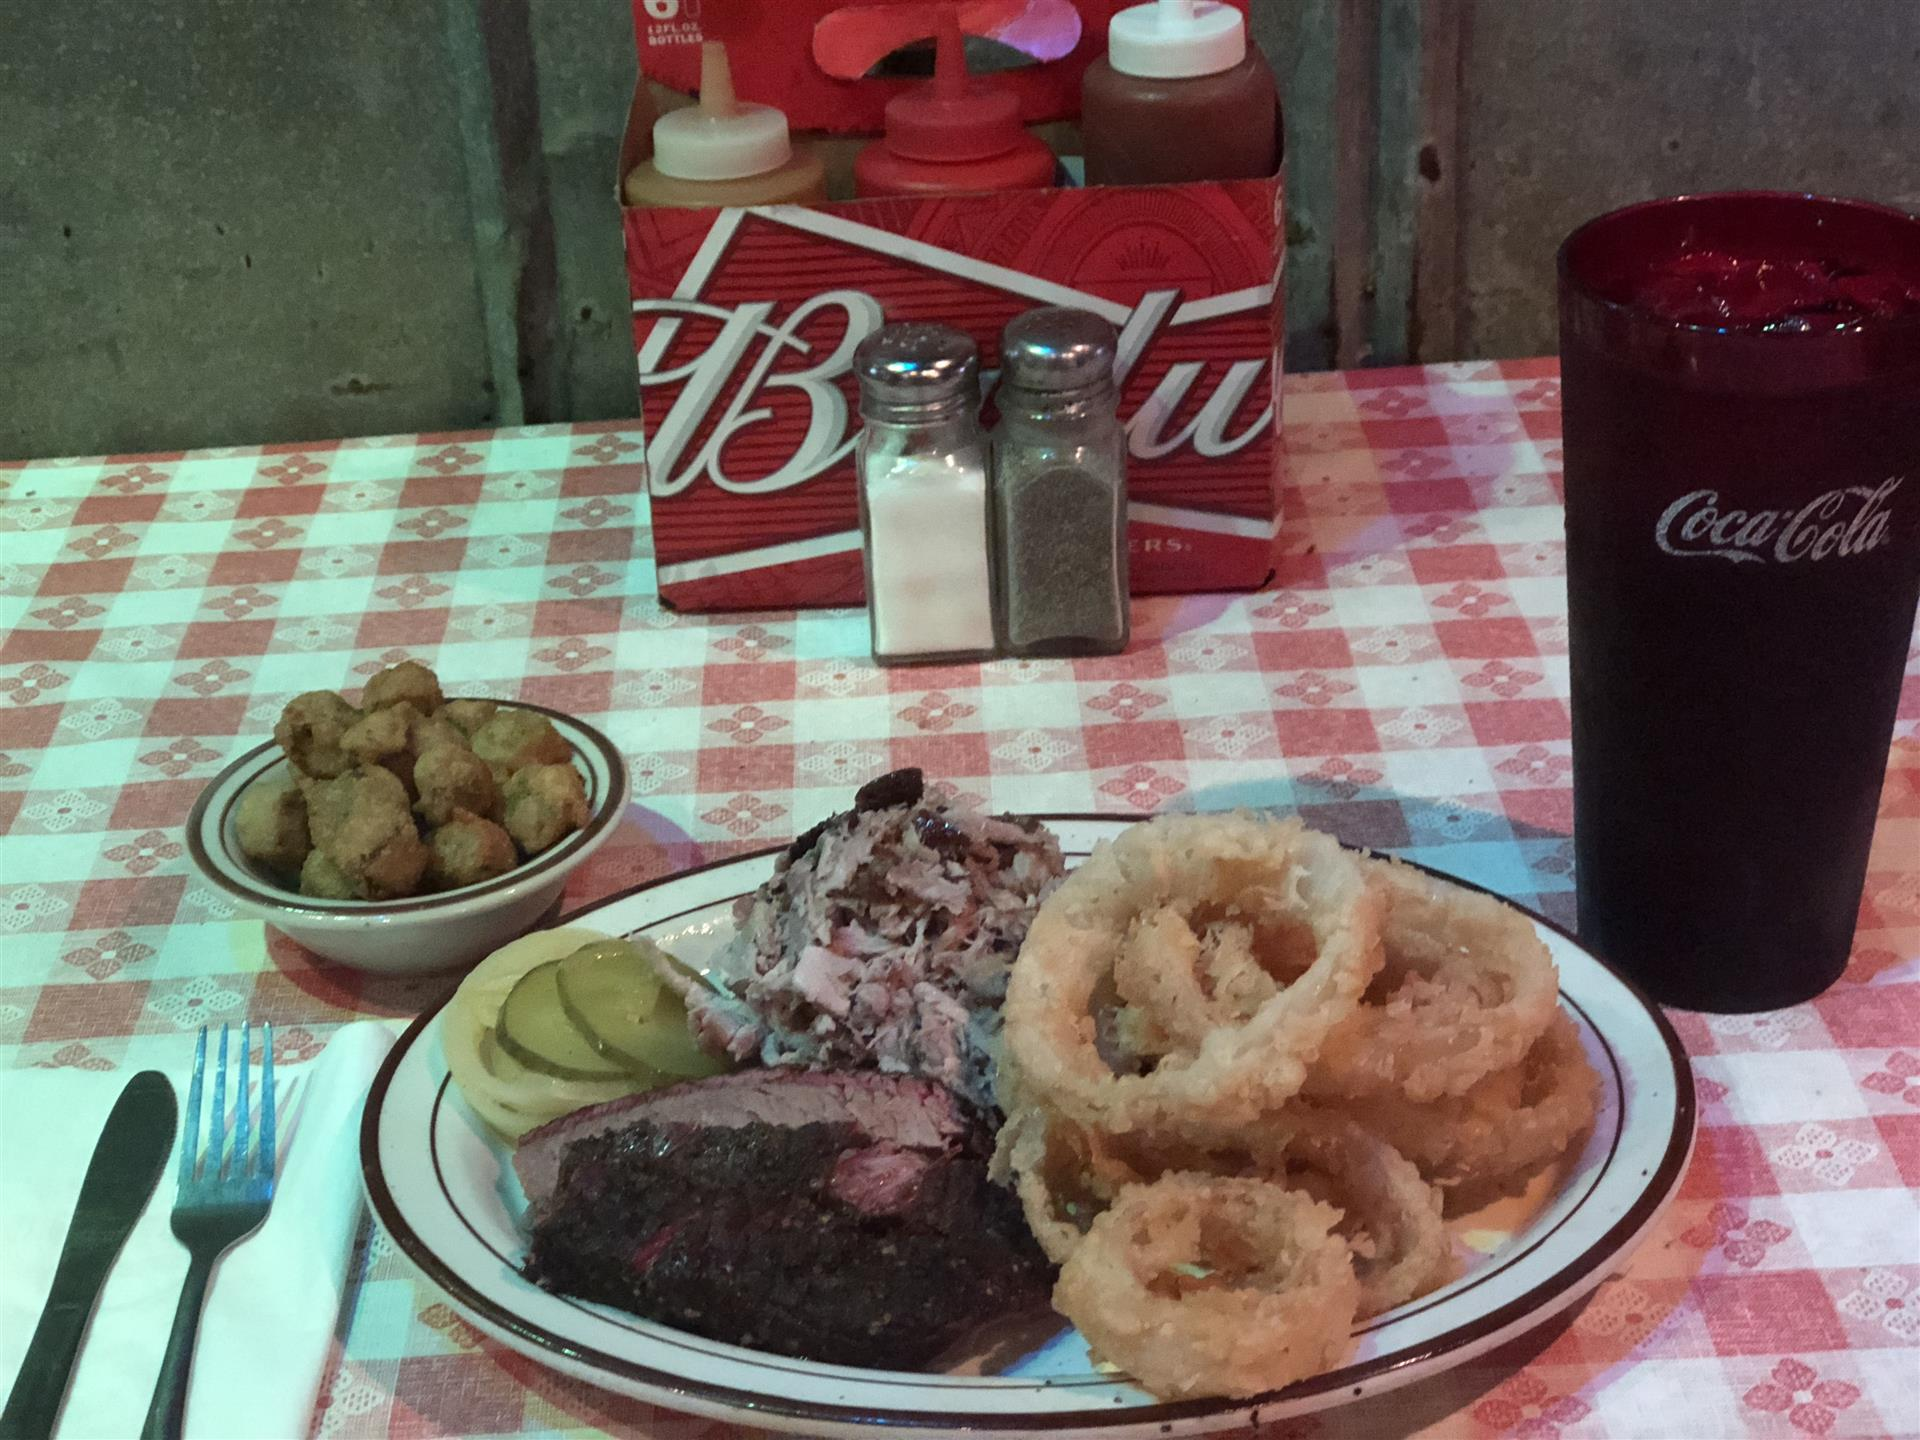 Brisket and onion rings on a plate next to a cup of soda and tater tots